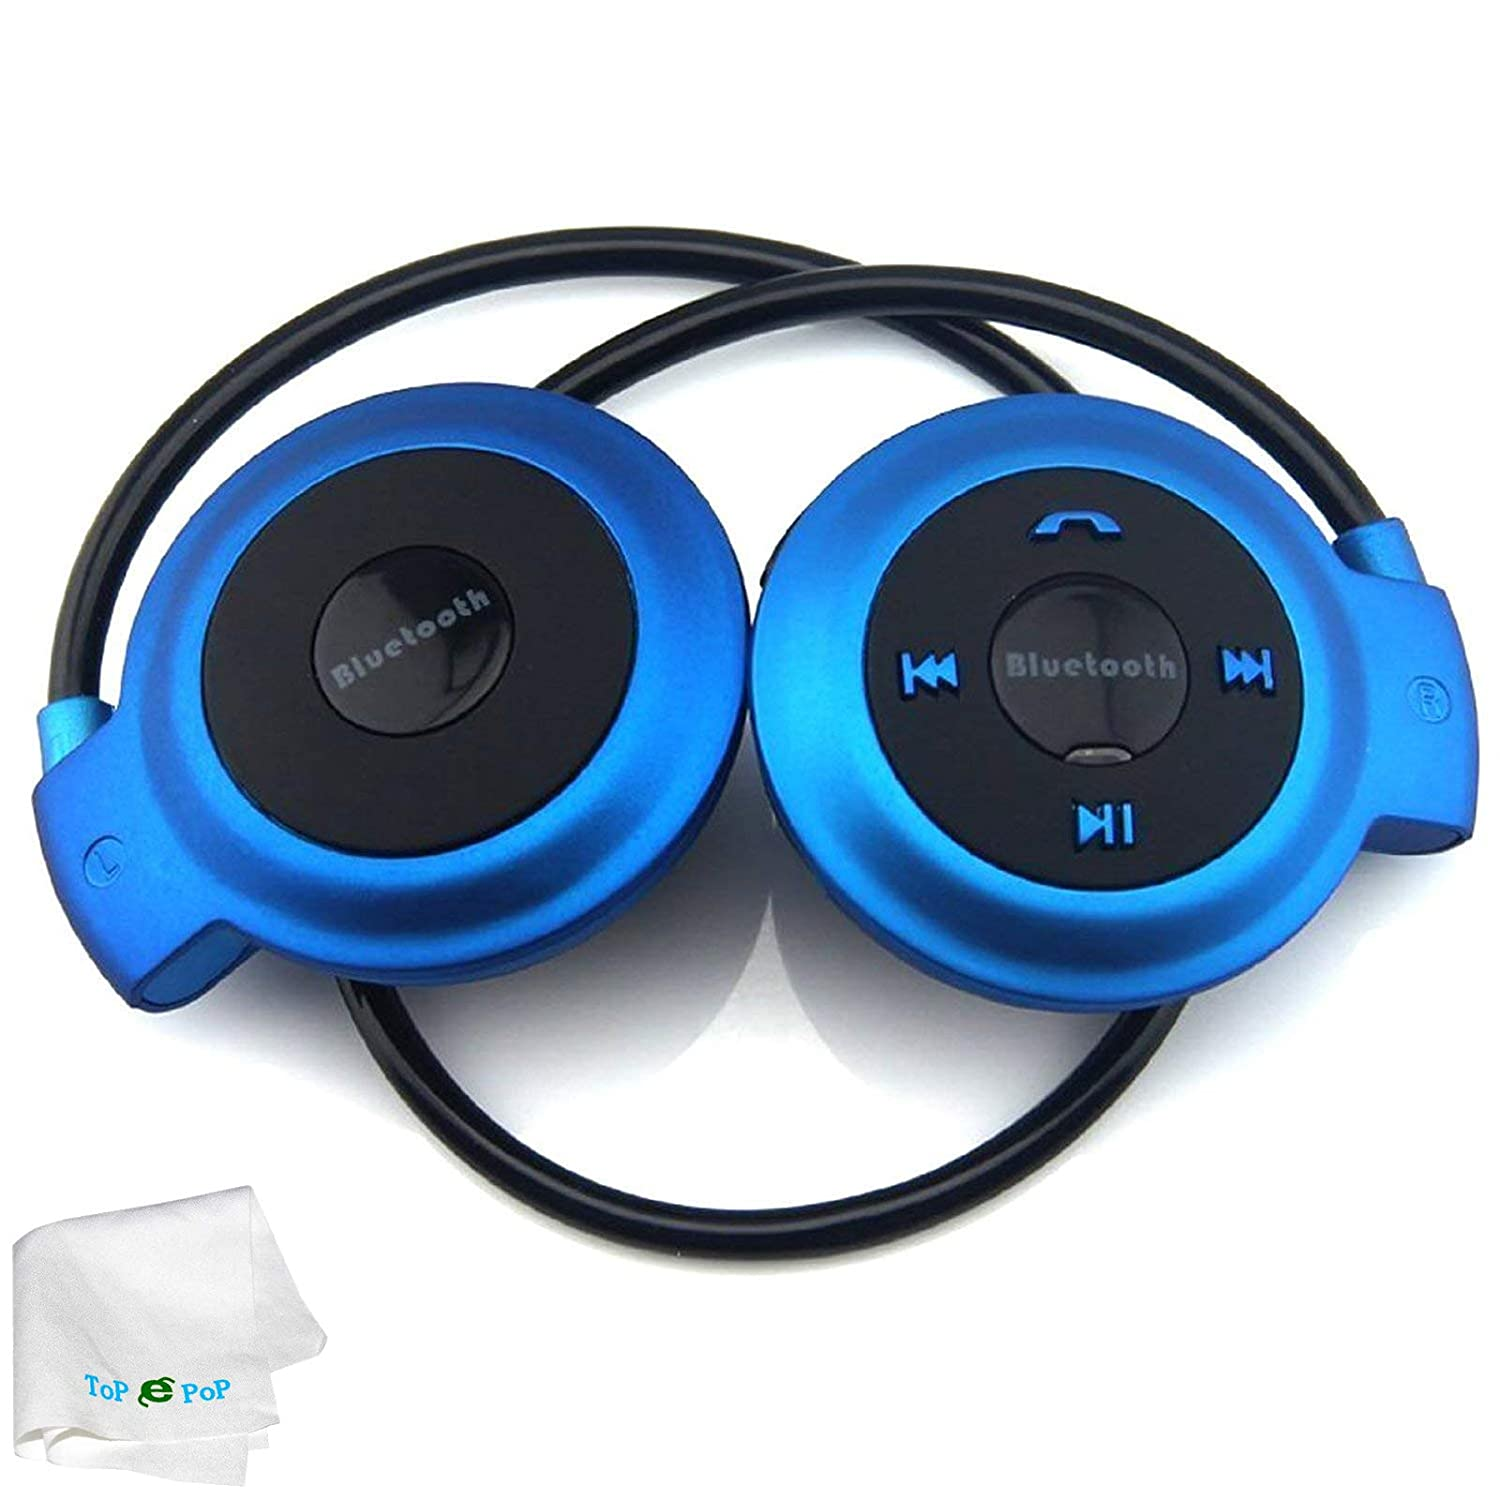 Sports Bluetooth Headset Wireless Stereo Bluetooth Earpiece Earphones Music Headphone Built-in Microphone Mp3 Fm Player Compatible with Android Ios Cellphones Smart Phones Driving Running Hiking Blue